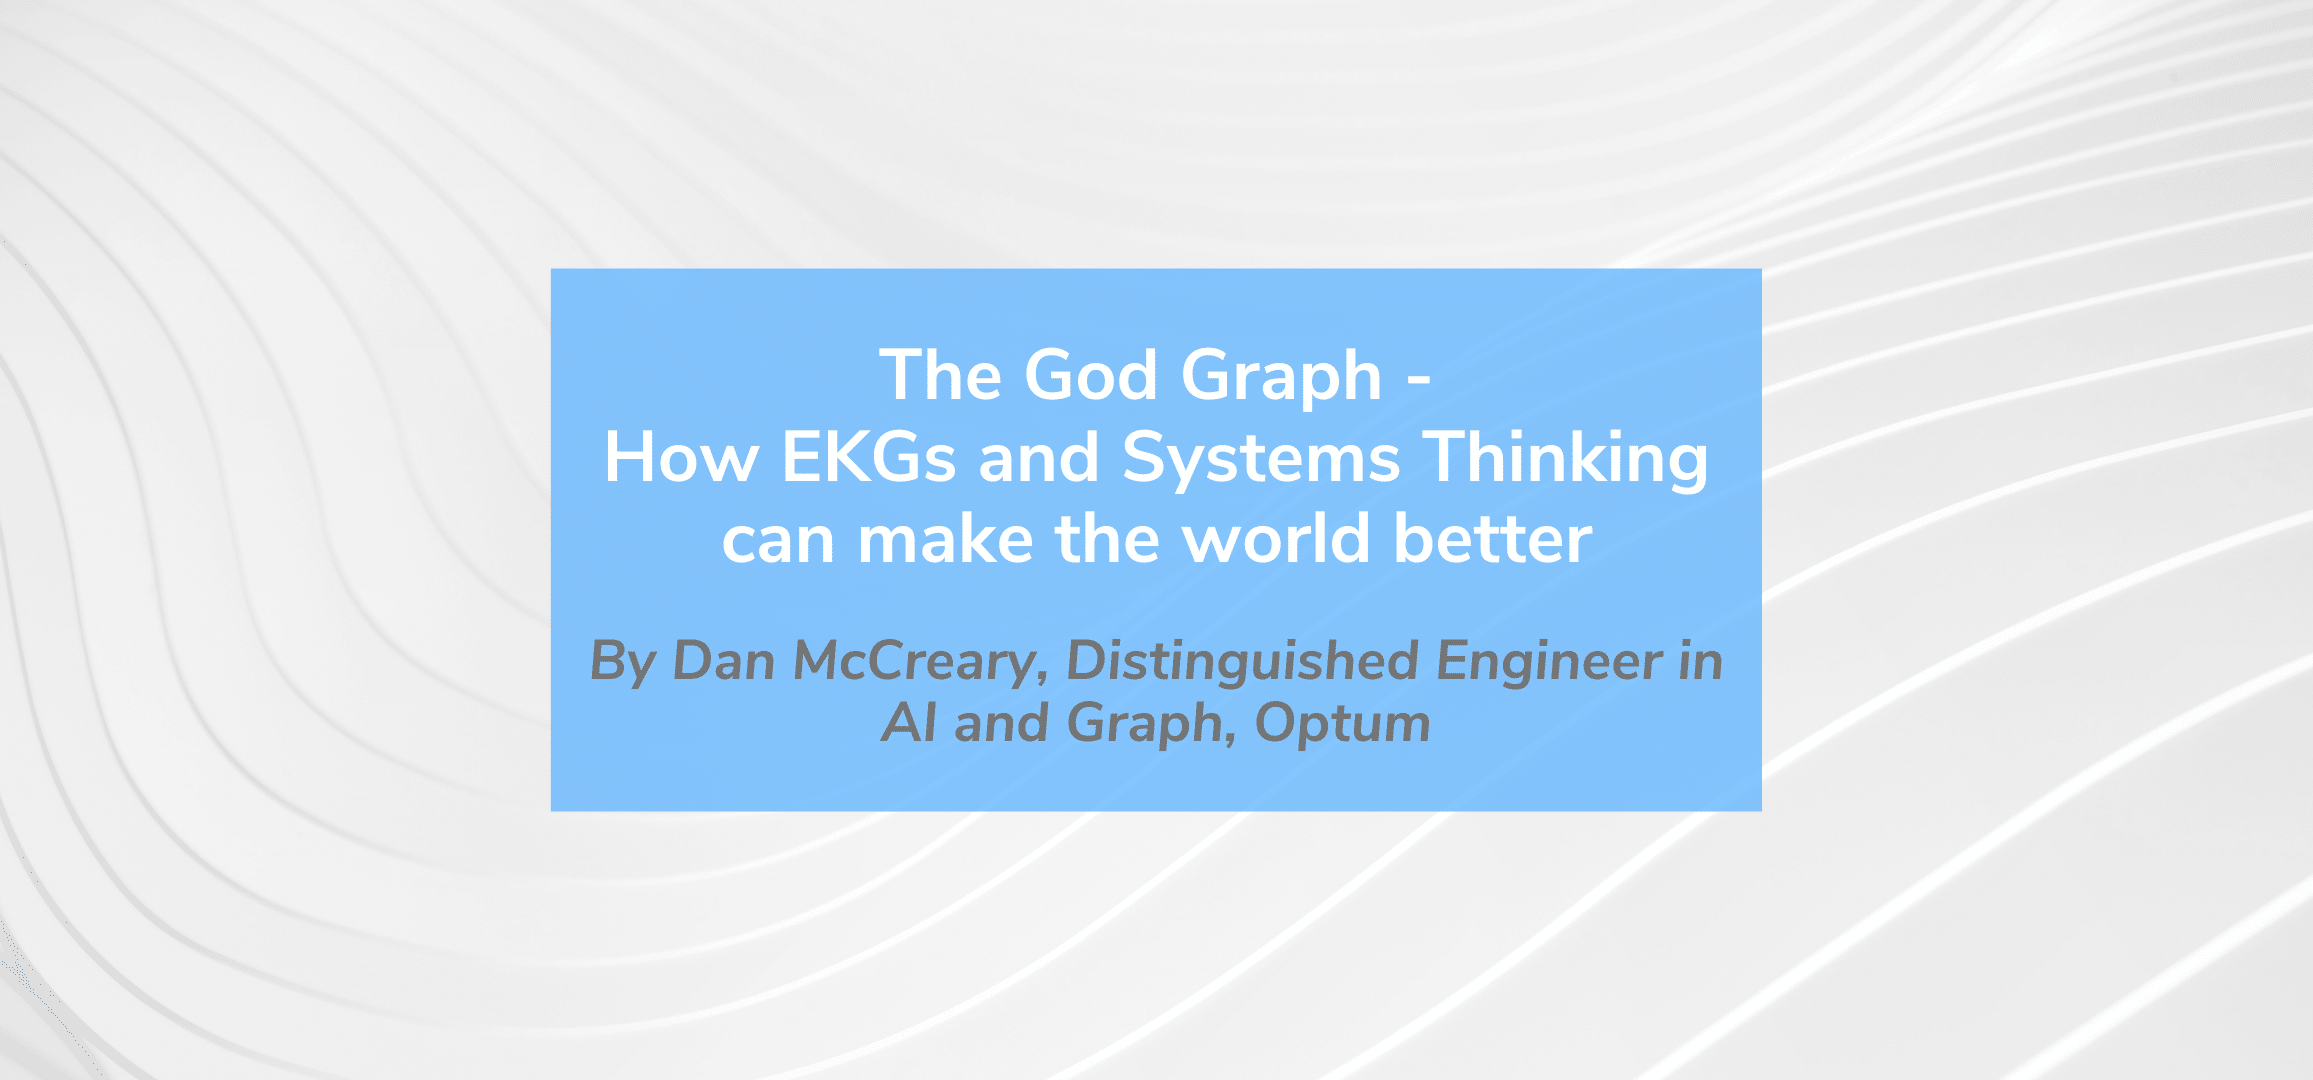 The God Graph - How EKGs and Systems Thinking Can Make the World Better